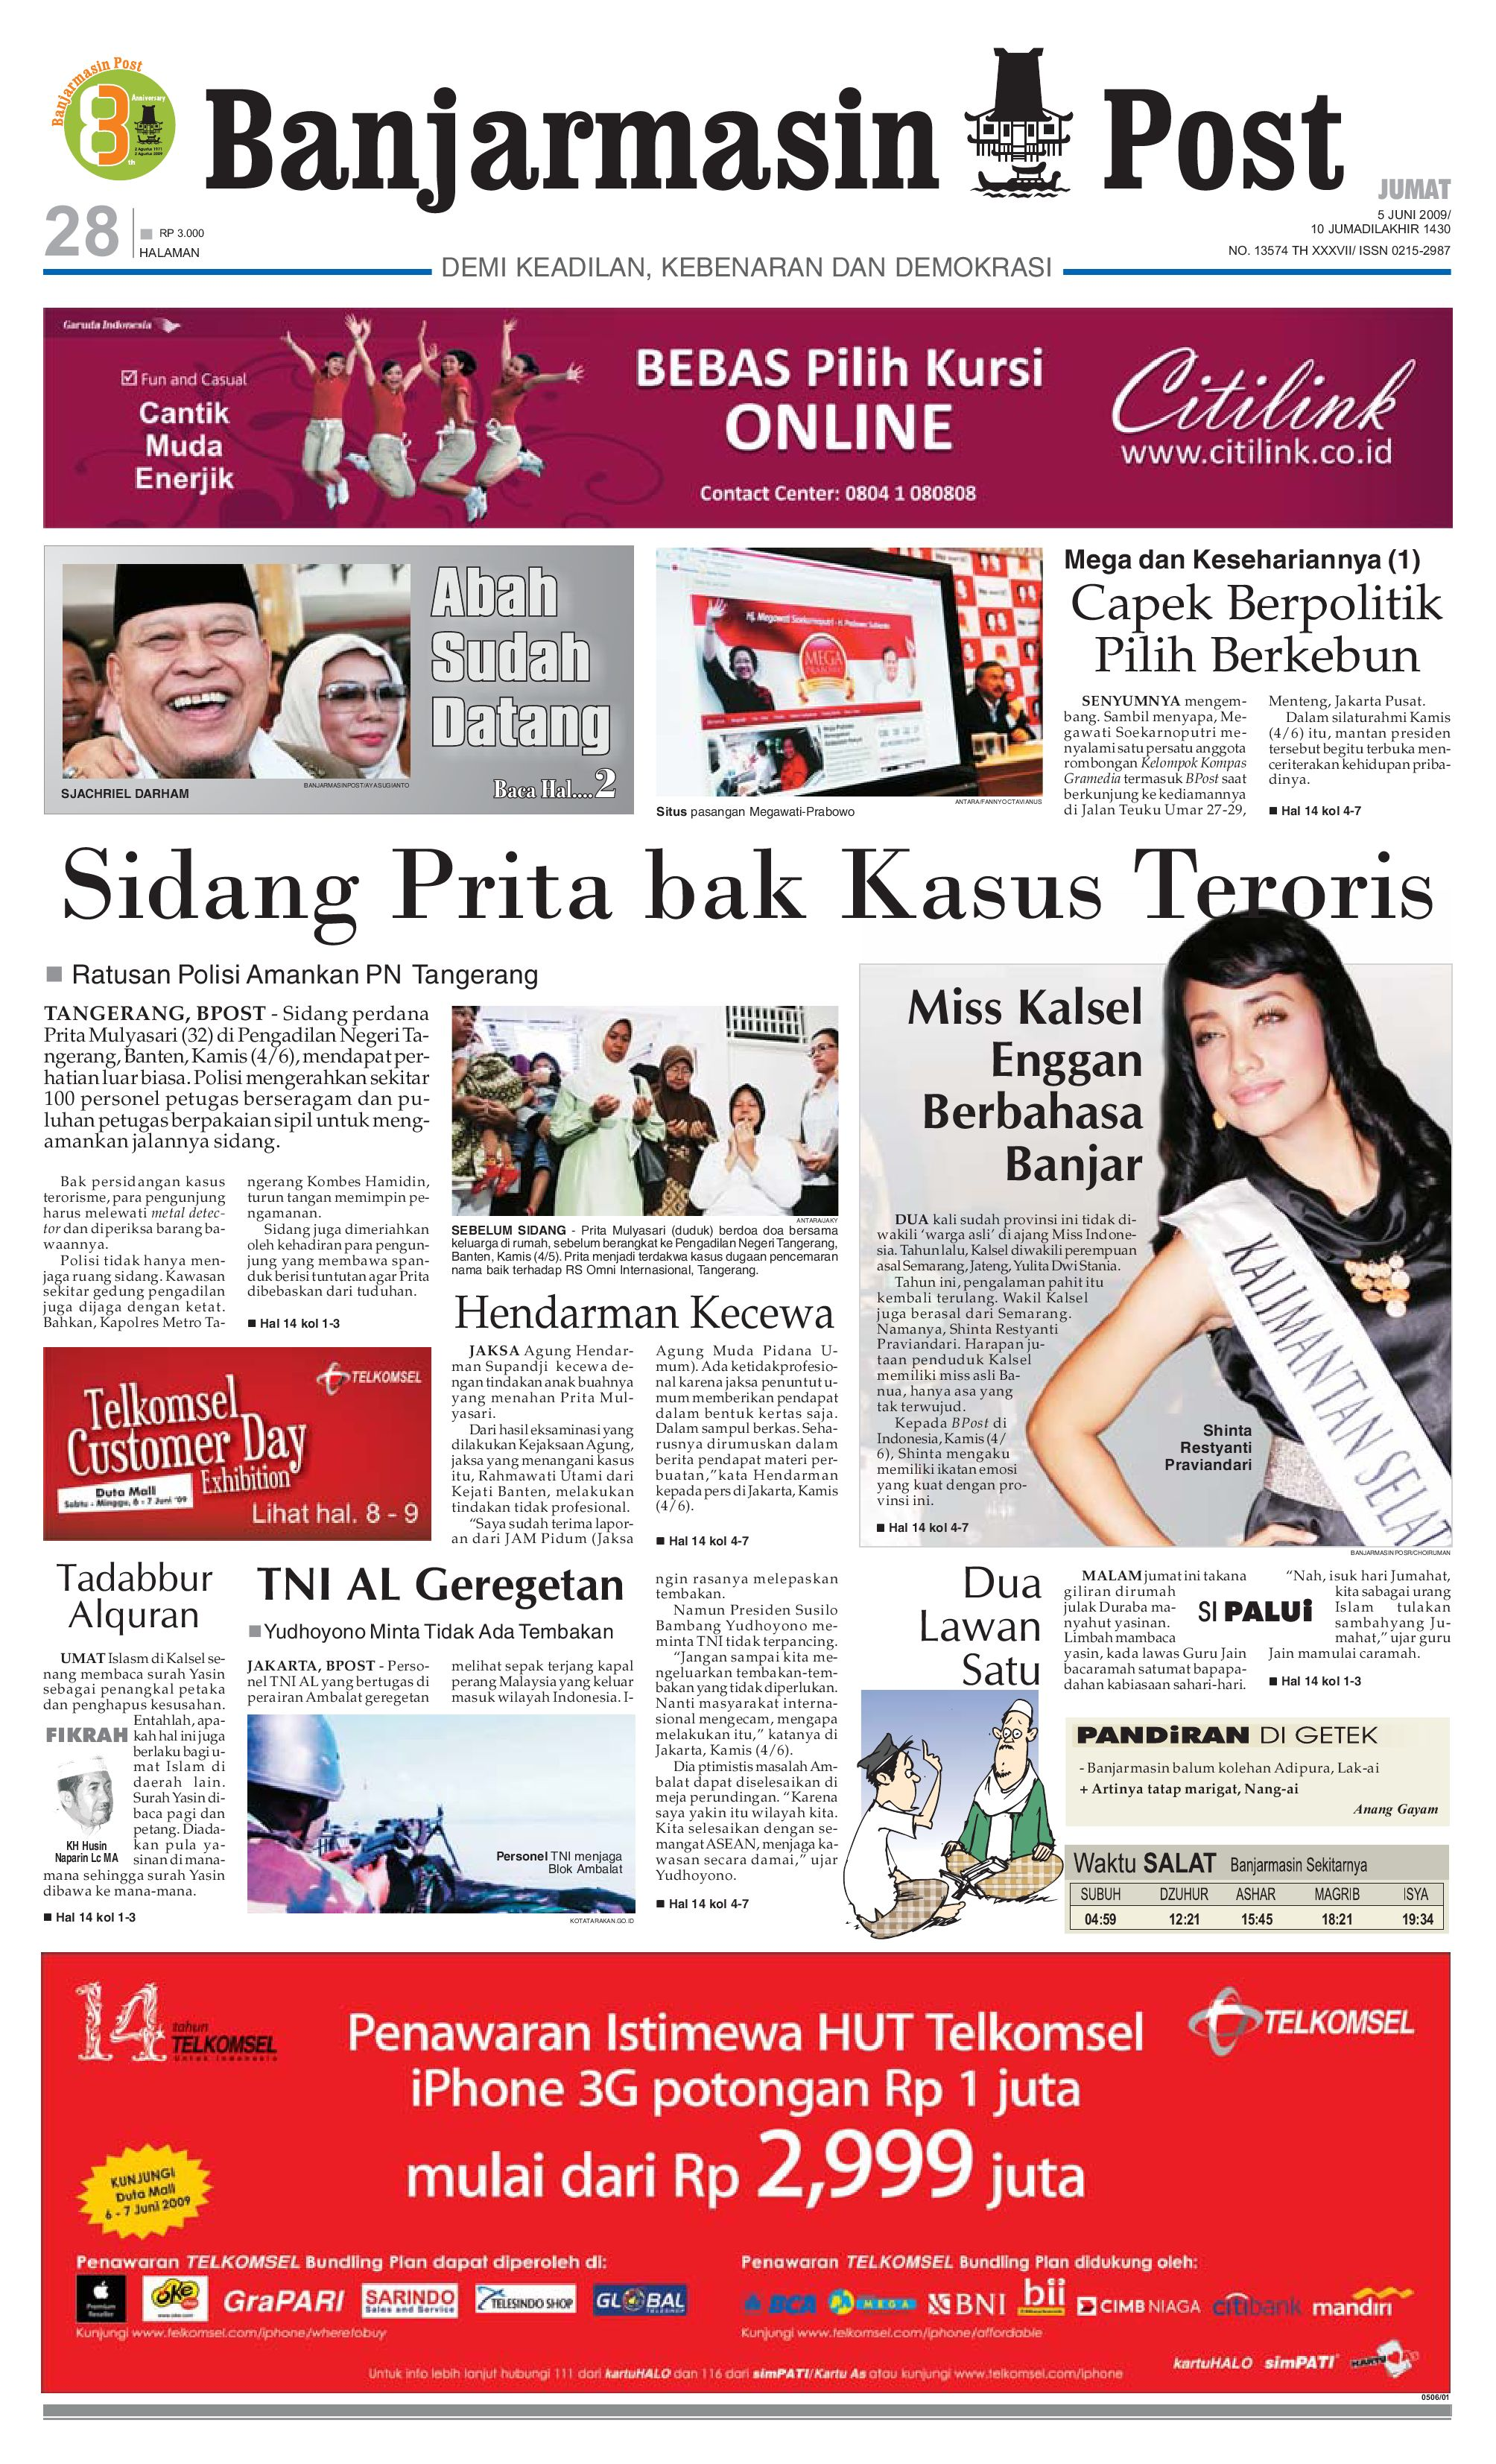 Banjarmasin Post Edisi Jumat 5 Juni 2009 By Issuu Tcash Vaganza 35 Sarung Orange Instan Anak Usia 1 7 Tahun